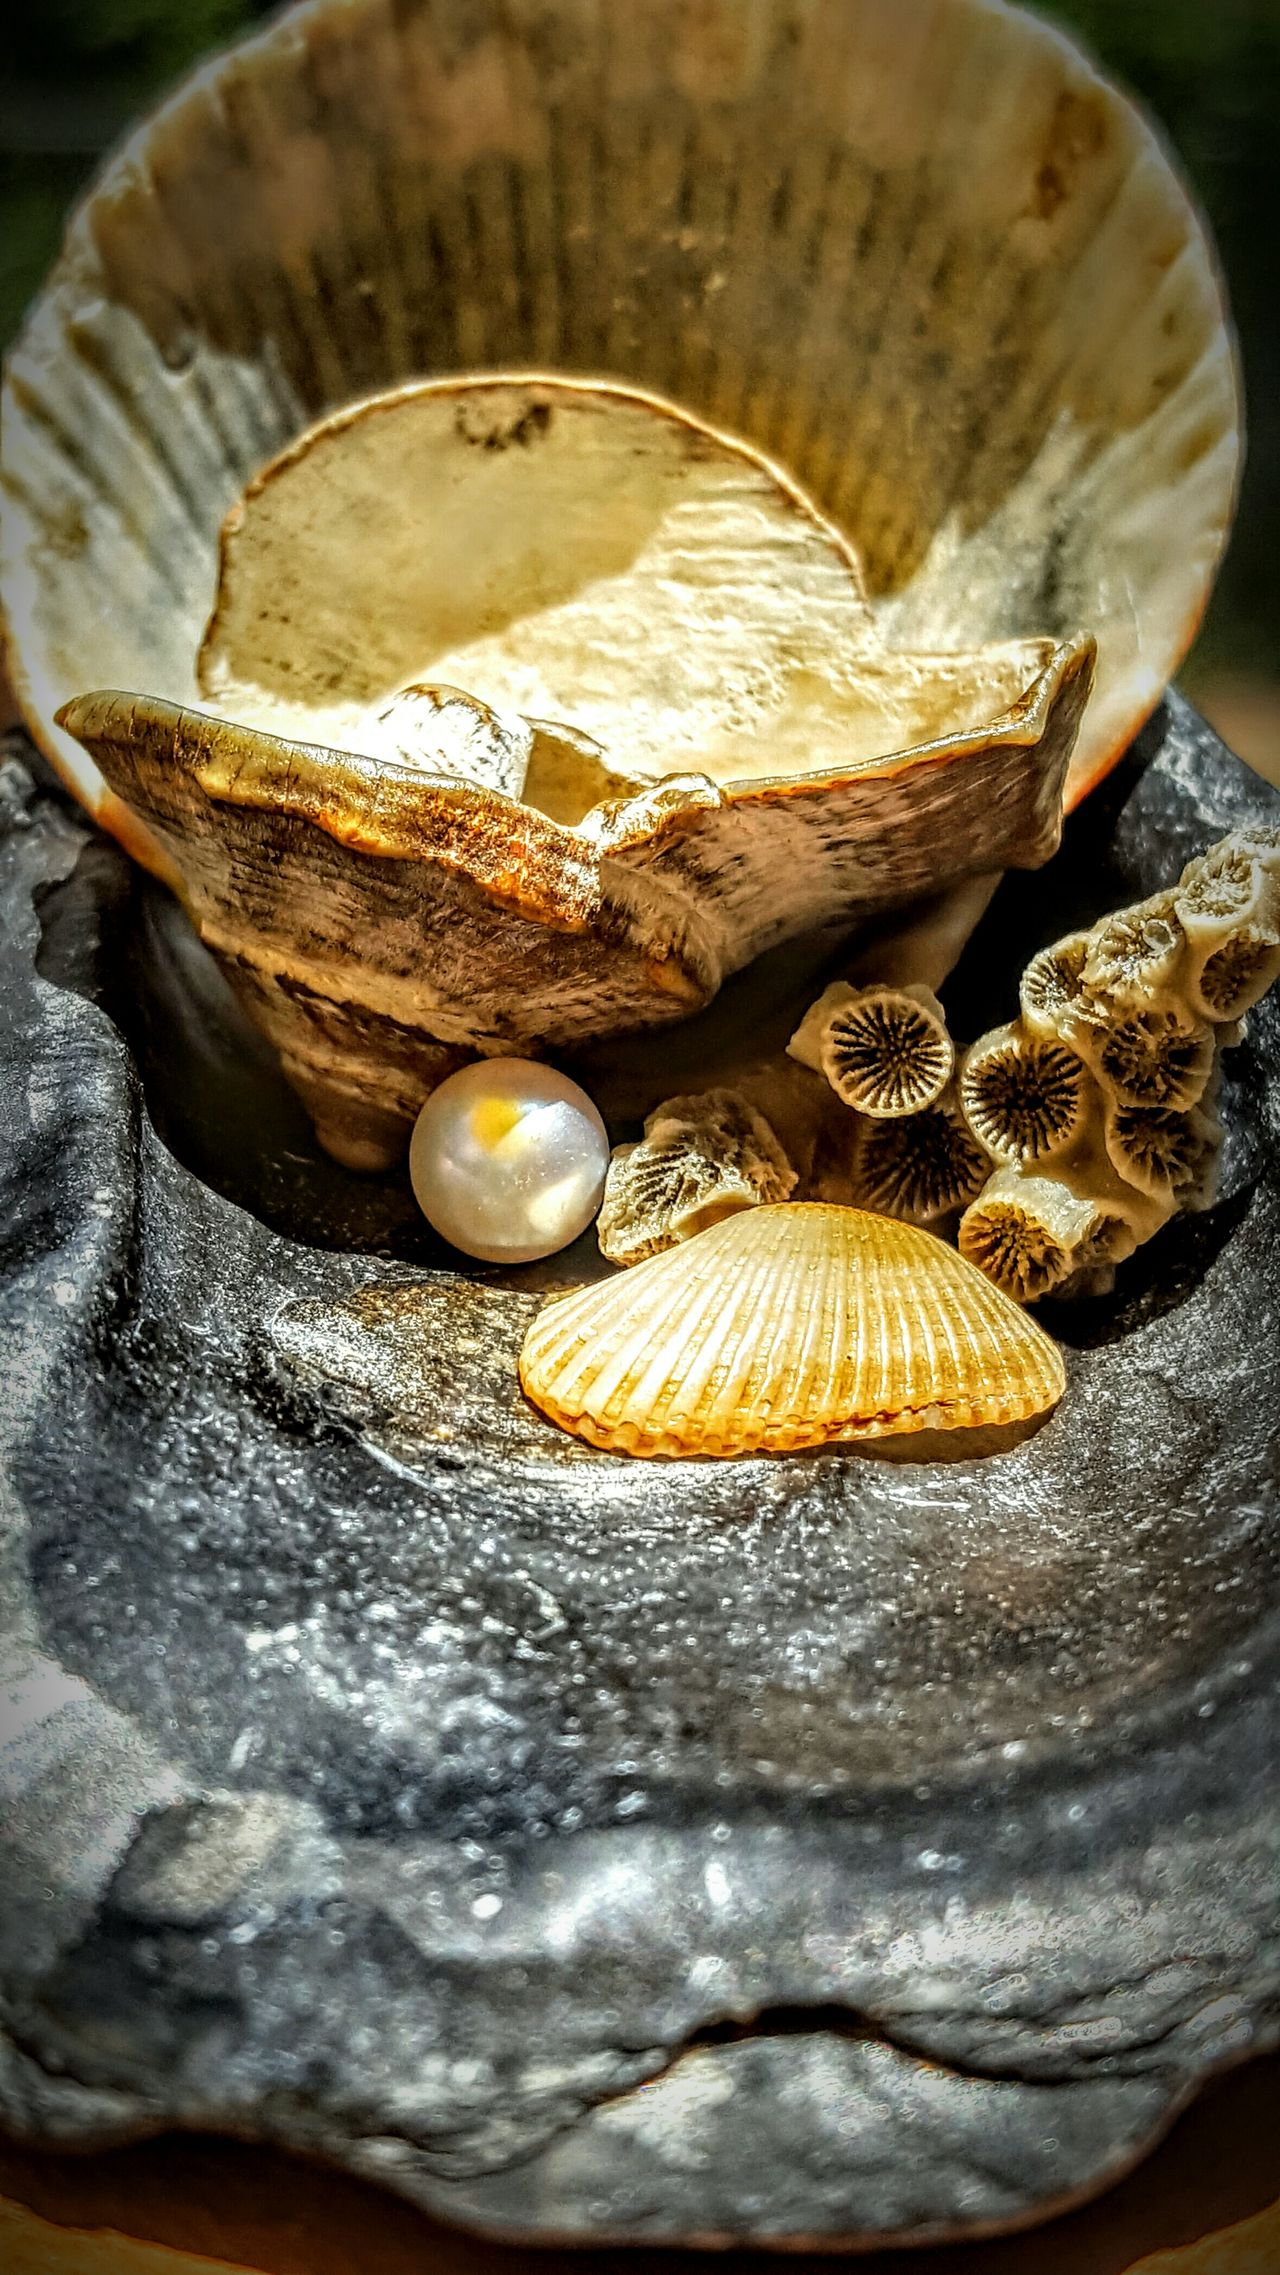 Seashell Seashells/dried Corals Seashells Seashell Collection Seashell Art Enjoying Life Nature_collection Seashellart Seashell❤ Seashell Hunt Check This Out Taking Photos